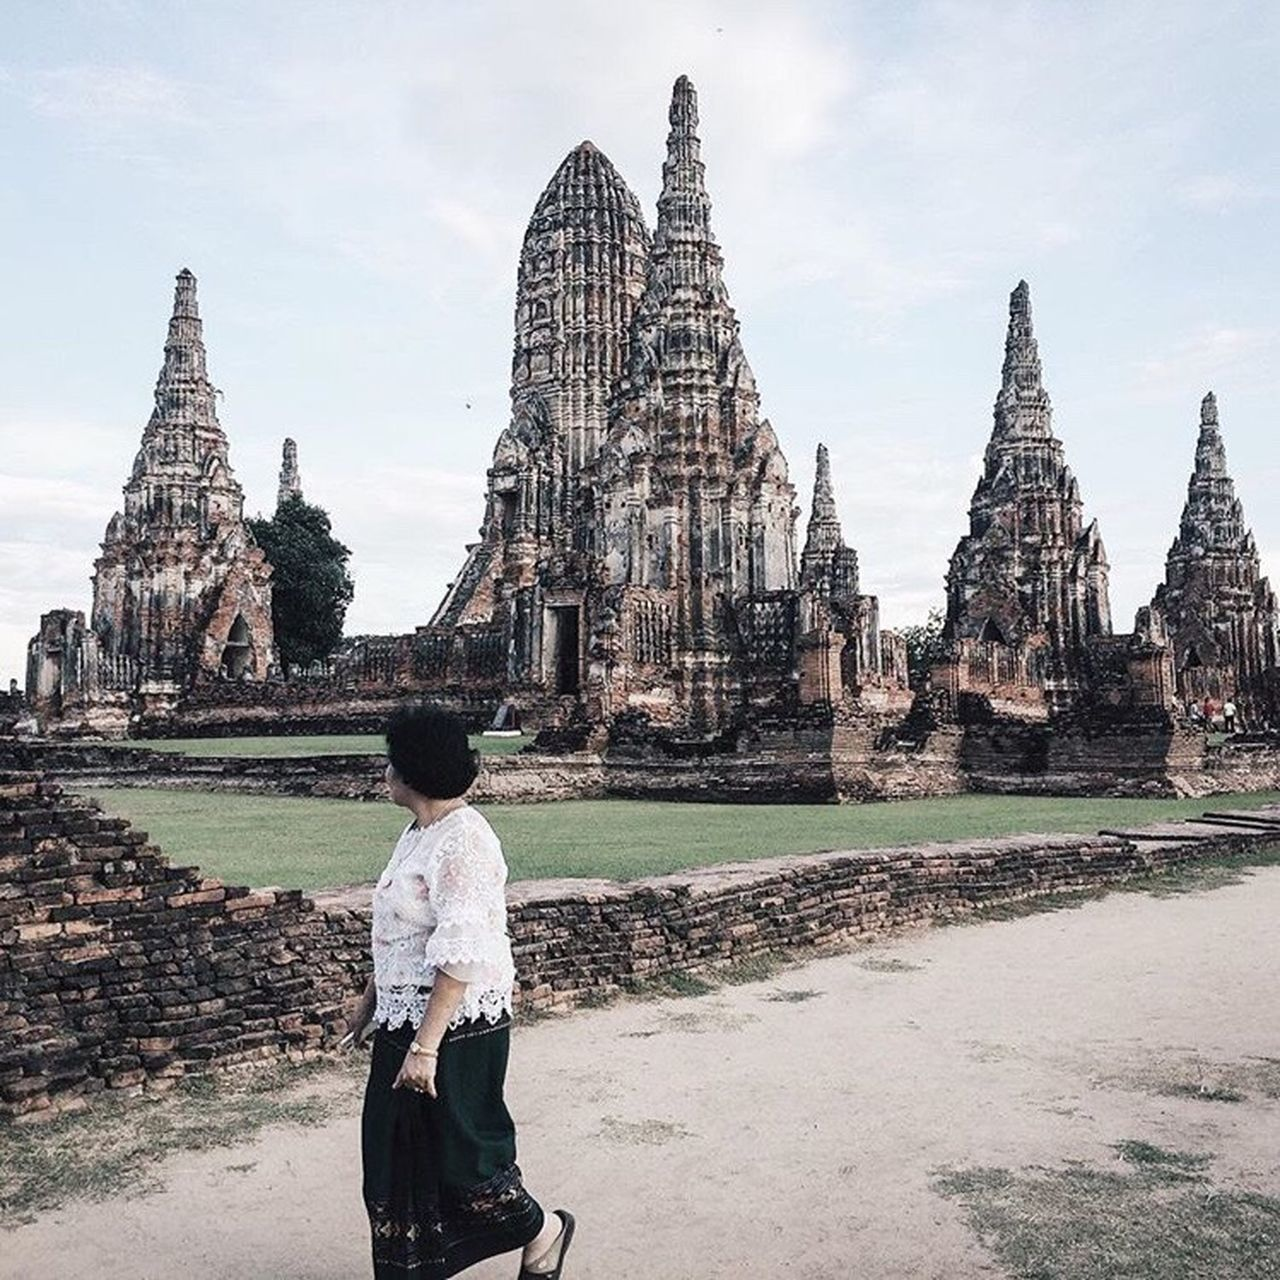 spirituality, religion, place of worship, architecture, real people, old ruin, built structure, building exterior, history, leisure activity, lifestyles, one person, travel destinations, sky, rear view, ancient, men, day, women, ancient civilization, outdoors, statue, standing, young adult, adult, people